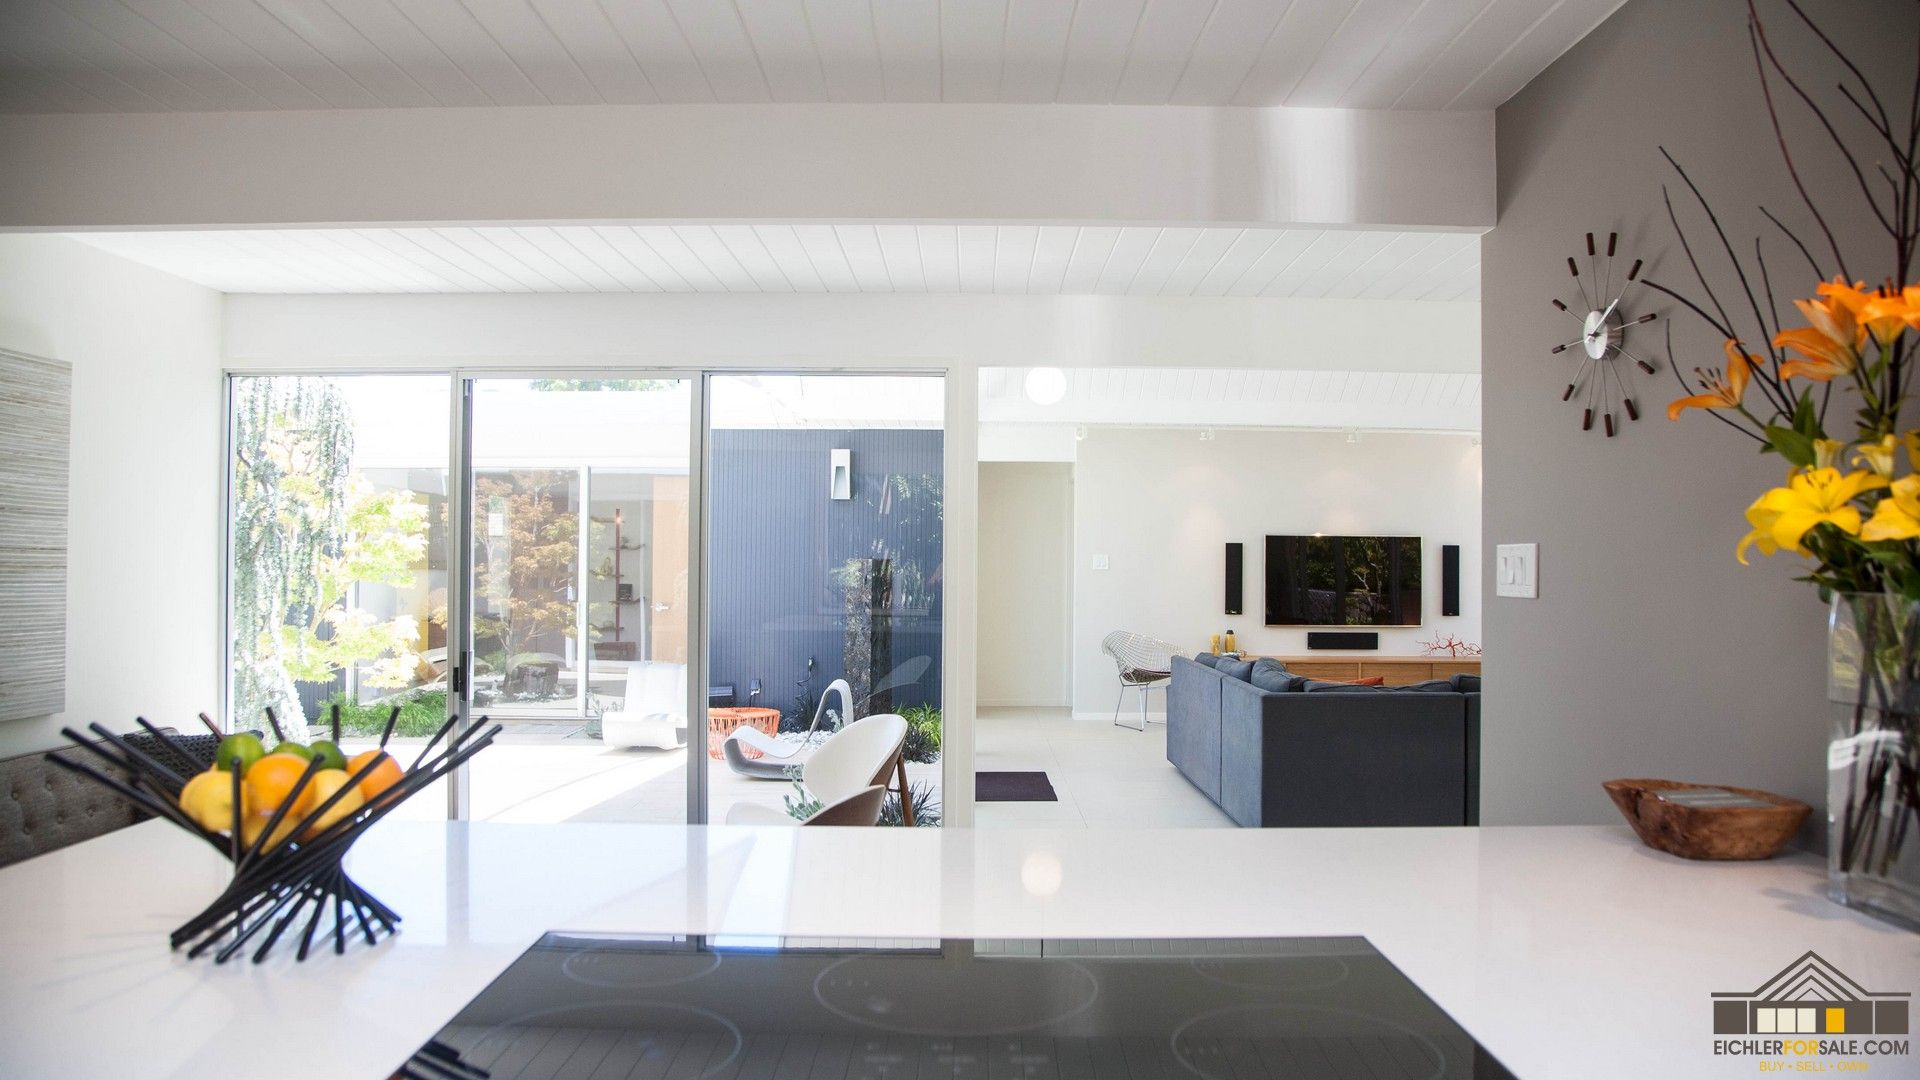 Eichler Kitchen Remodeling | Photos of Remodeled Mid-Century Modern ...